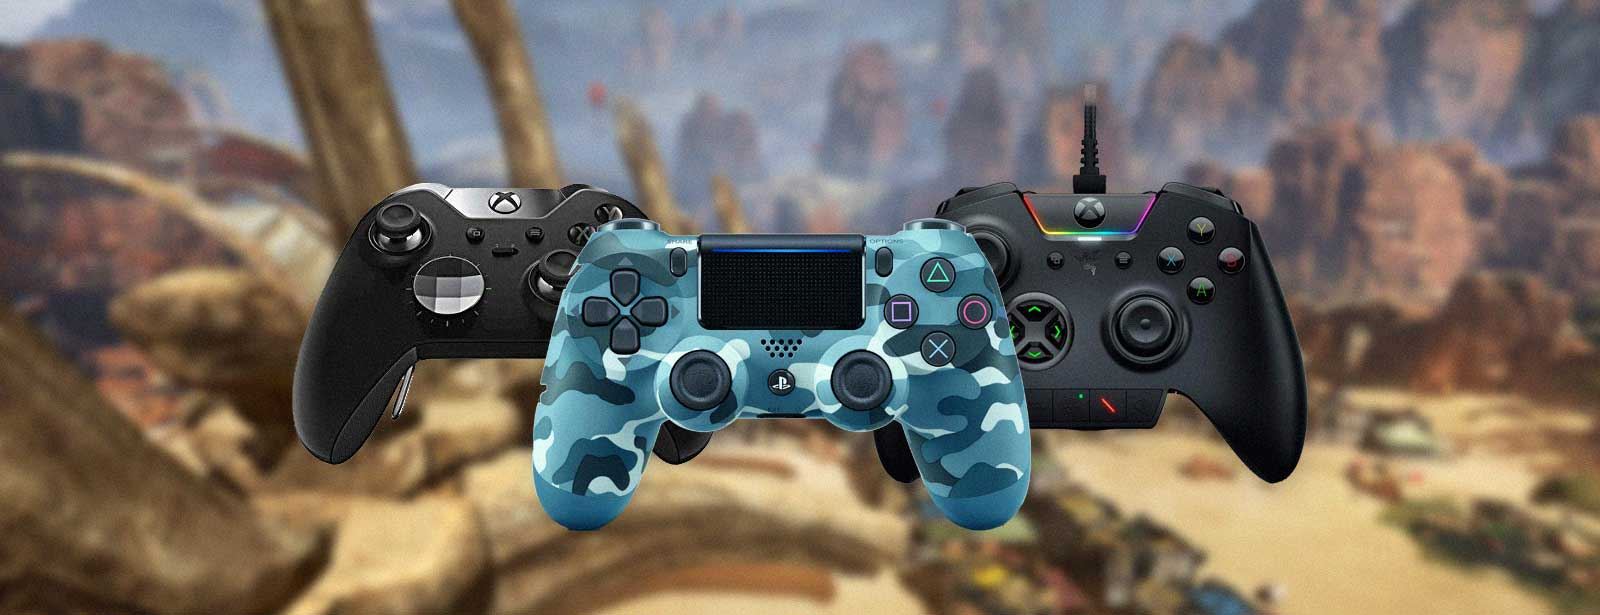 how to connect controller to pc apex